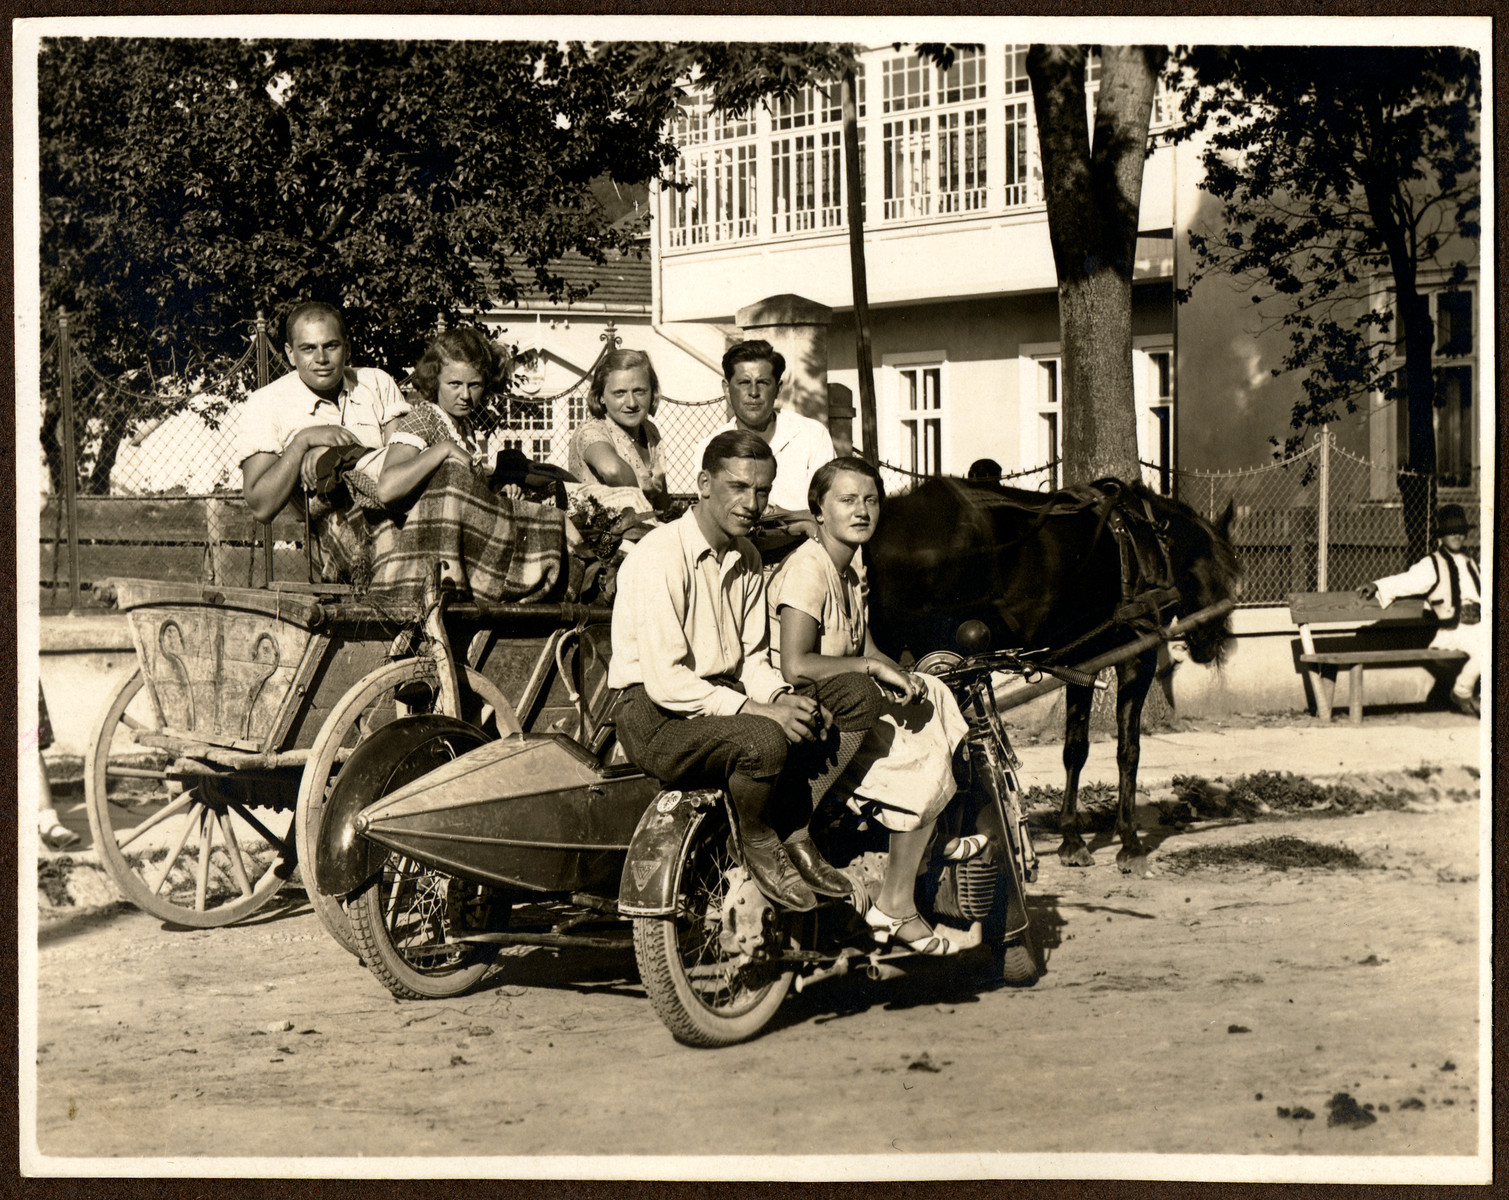 A group of young people go for an excursion in prewar Czernowitz.  Among those pictured are Ella Grossman in the horse-drawn carriage, third from the left.